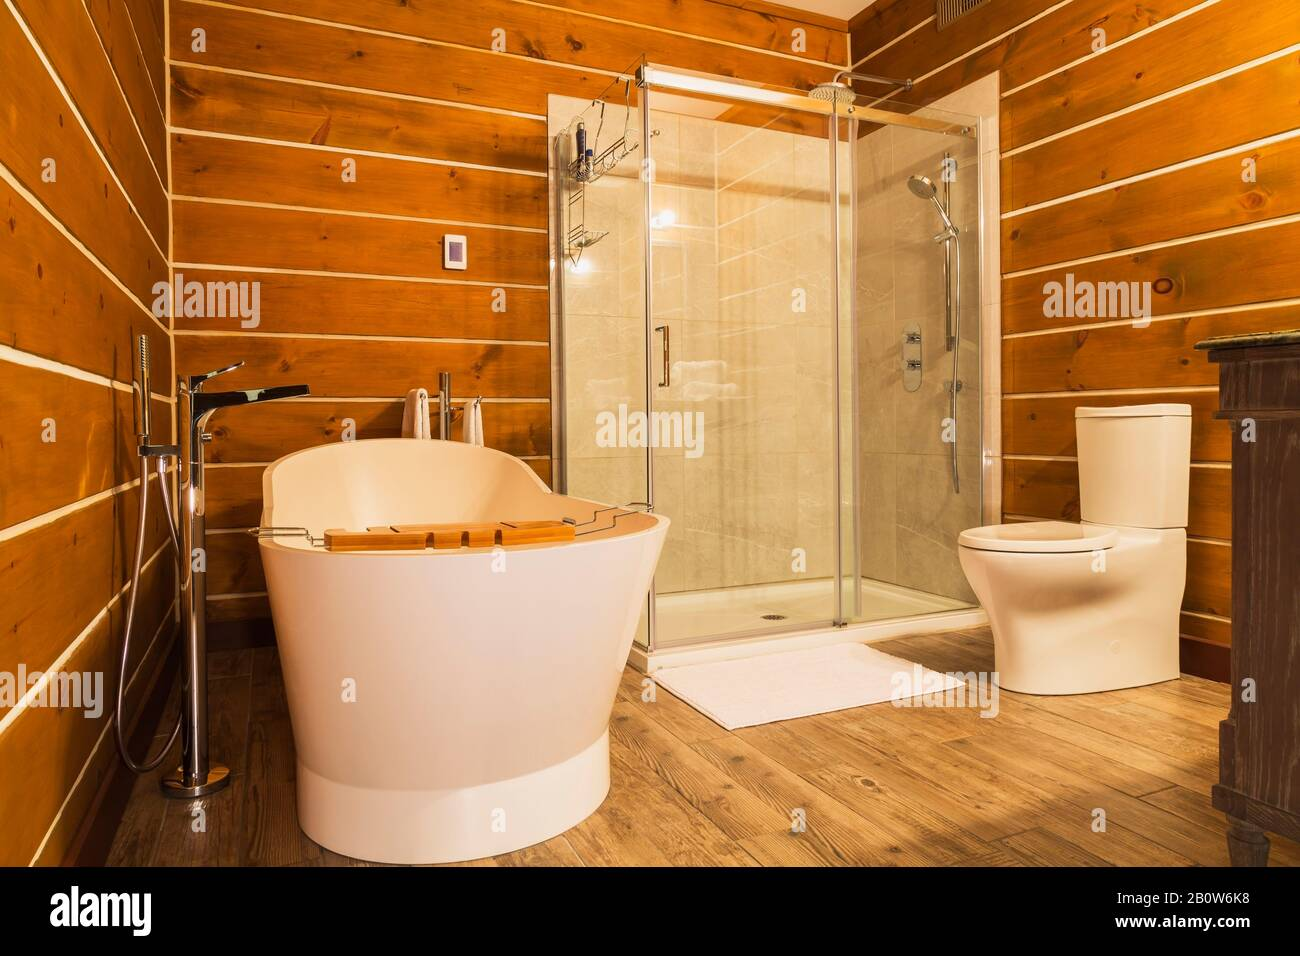 Interior View Of Bathroom With Freestanding Tub And Wood Cladding On Walls And Floor In A Log Home Stock Photo Alamy